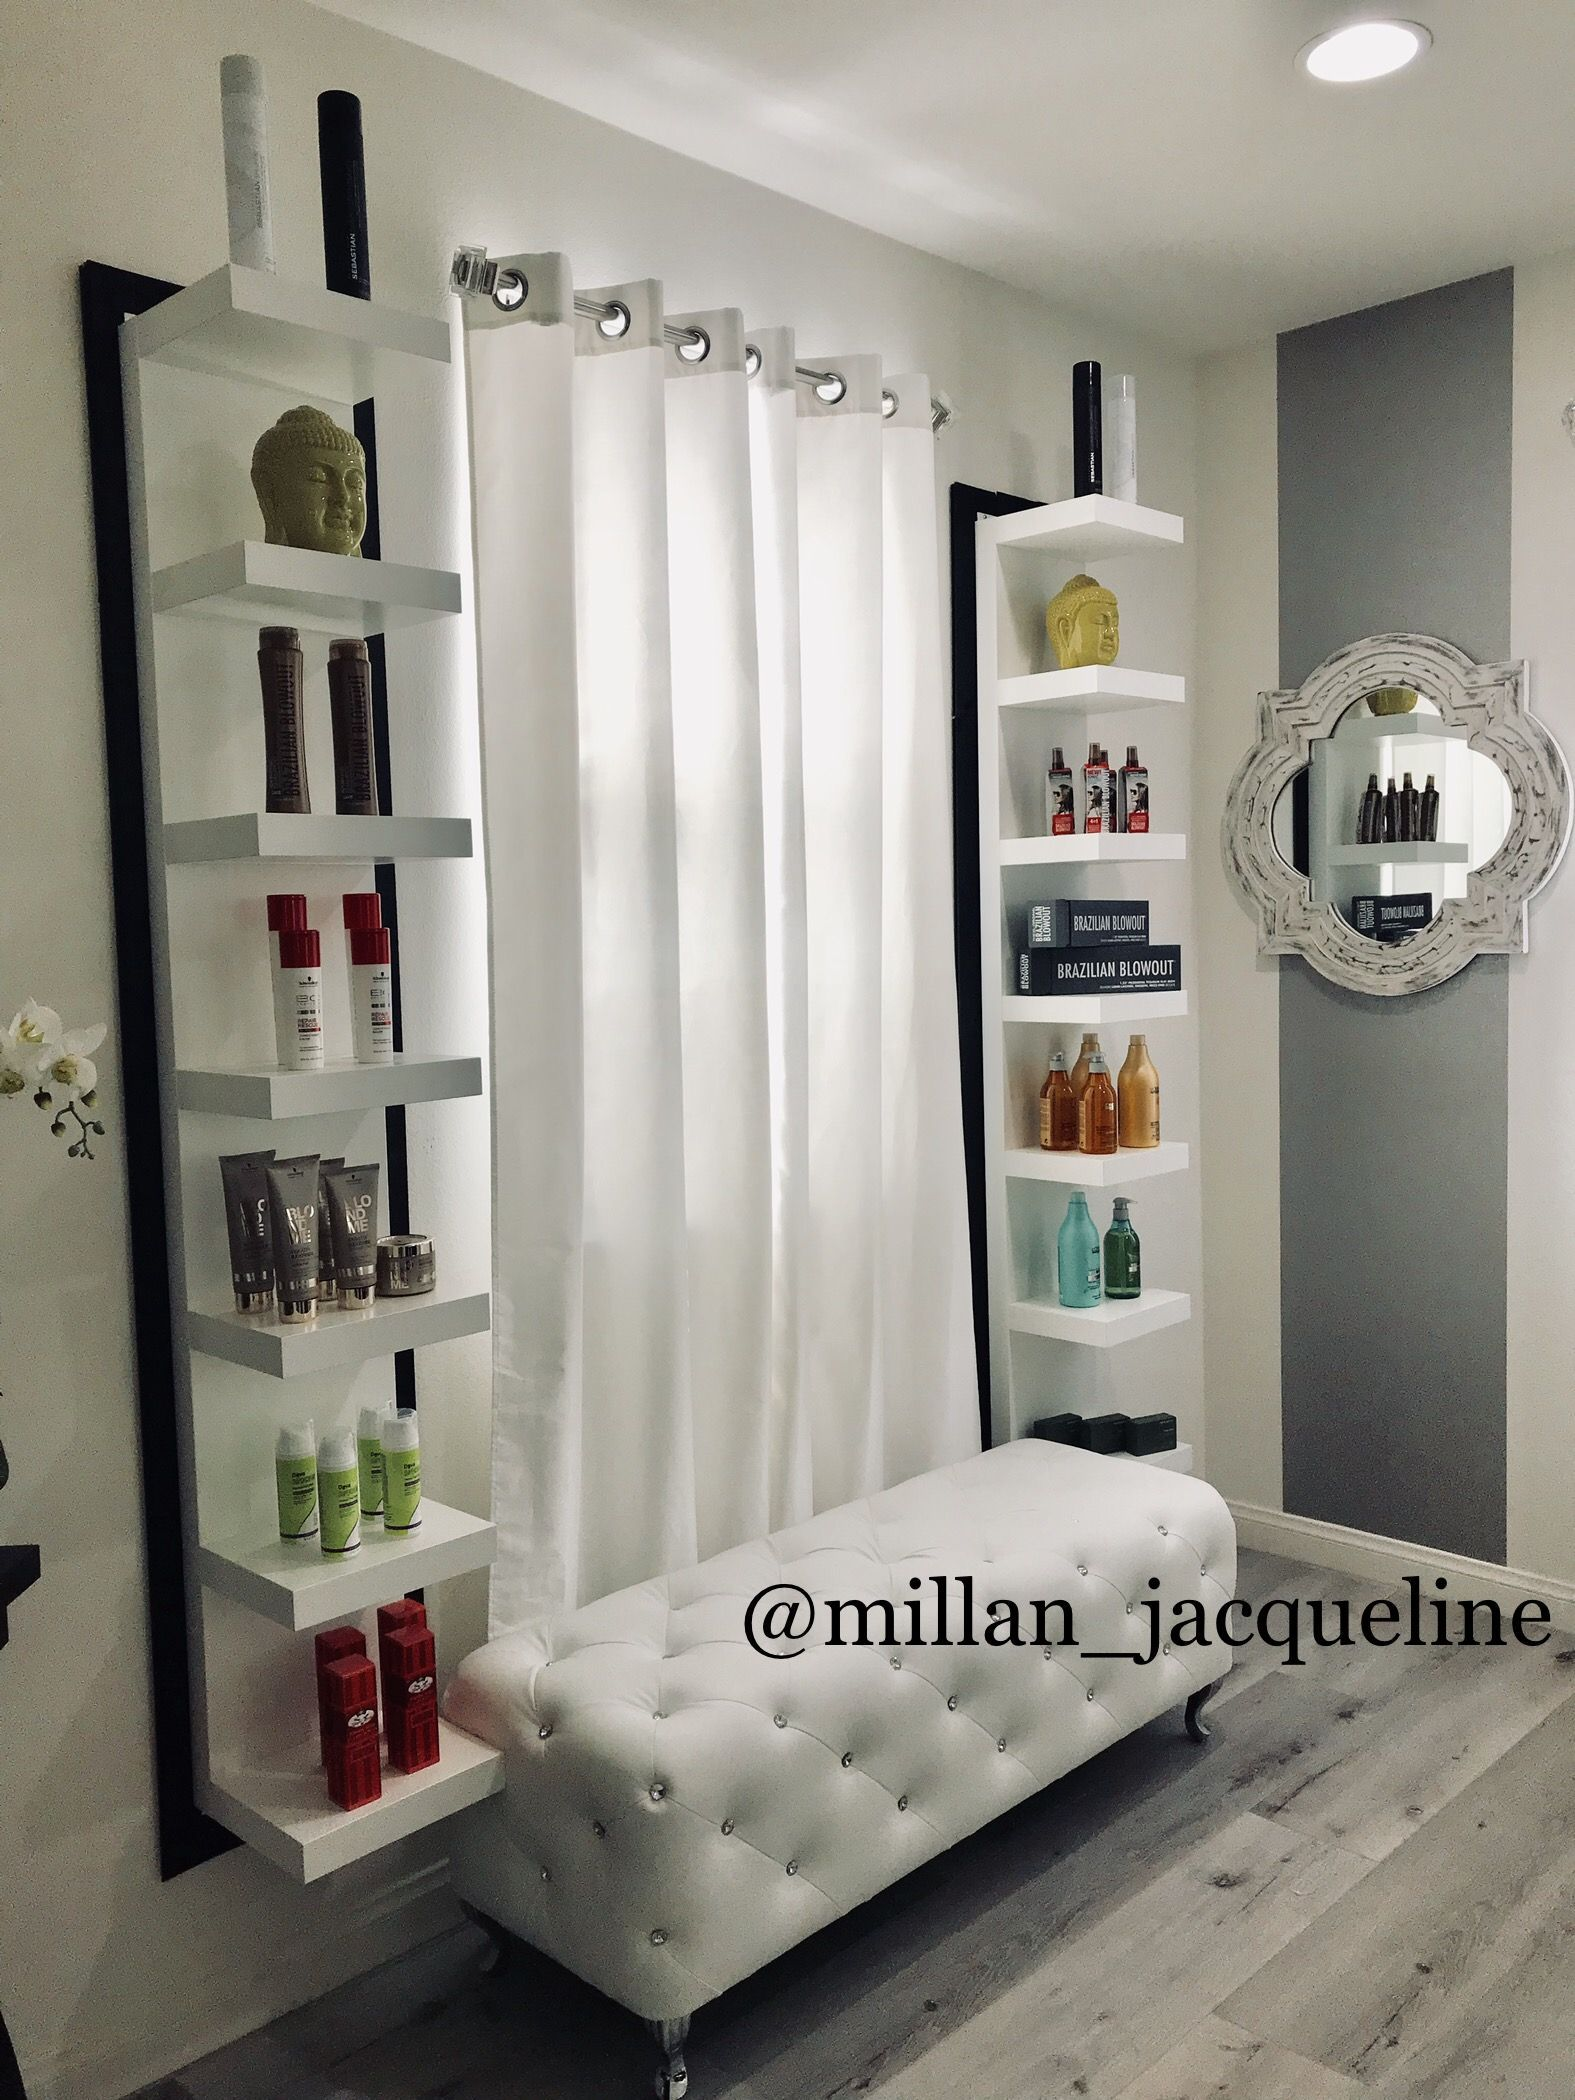 Home Salón Ideas, home Salón, Hair Salon, Salon Ideas, Hair